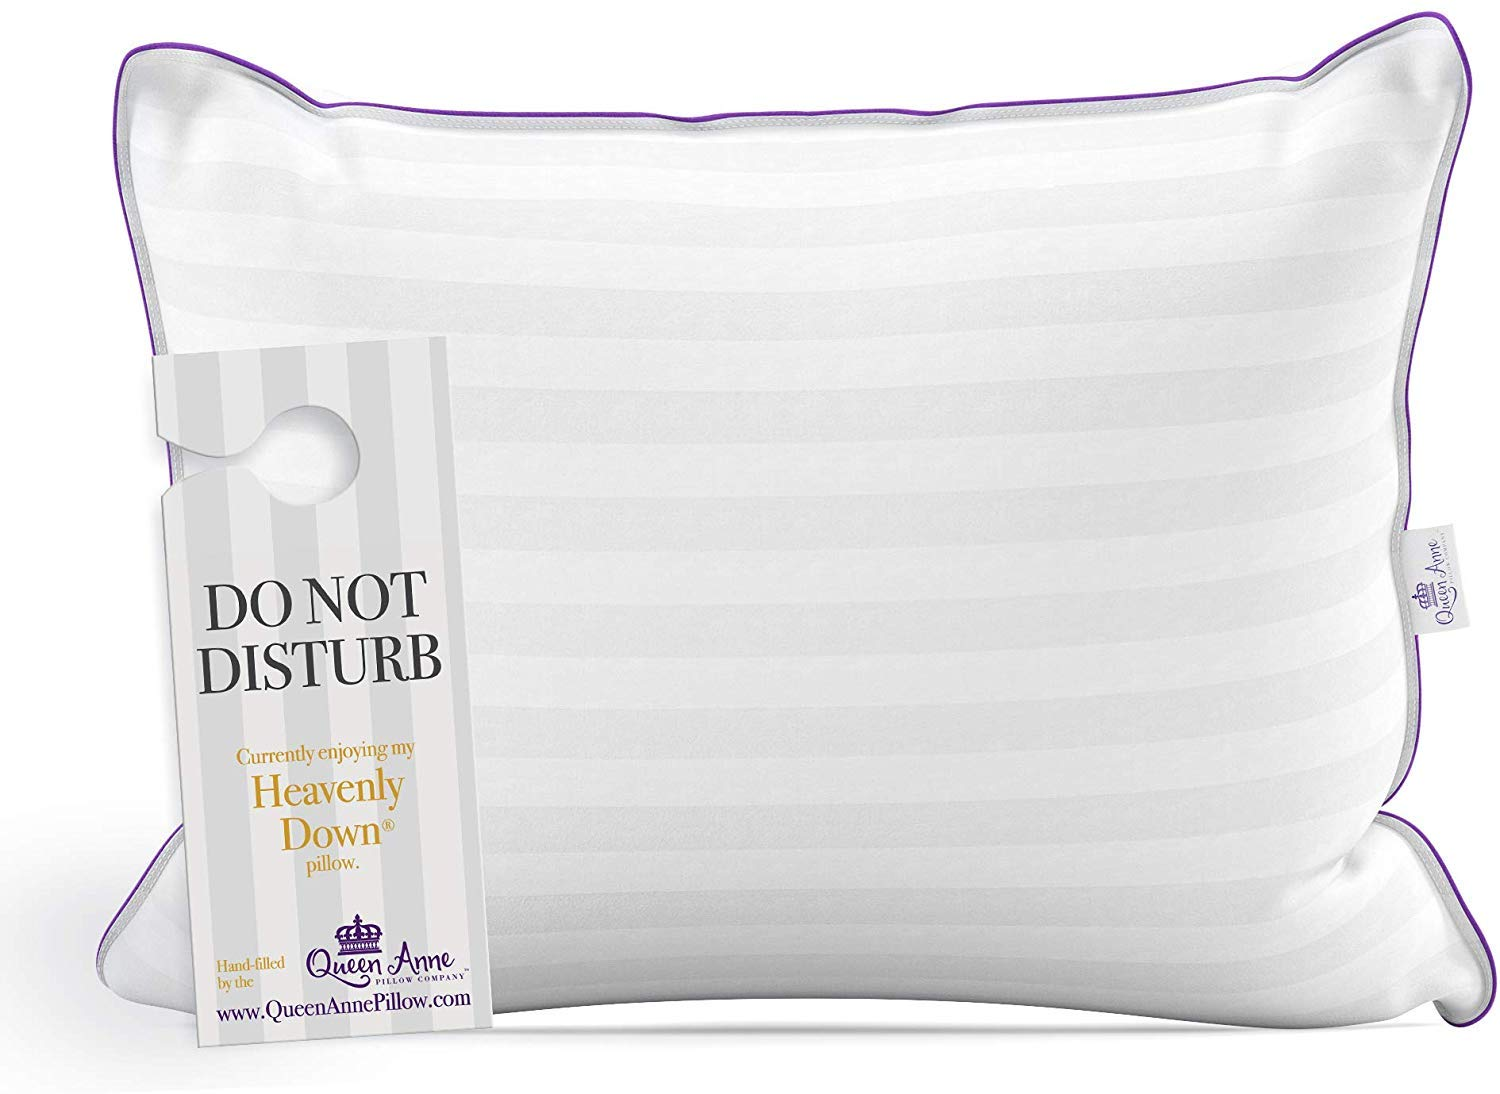 Queen Anne Luxury Hotel Pillow - Majesty Down Synthetic - Allergy Free Hypoallergenic Bed Pillow Pillow - USA Made (Standard Firm)